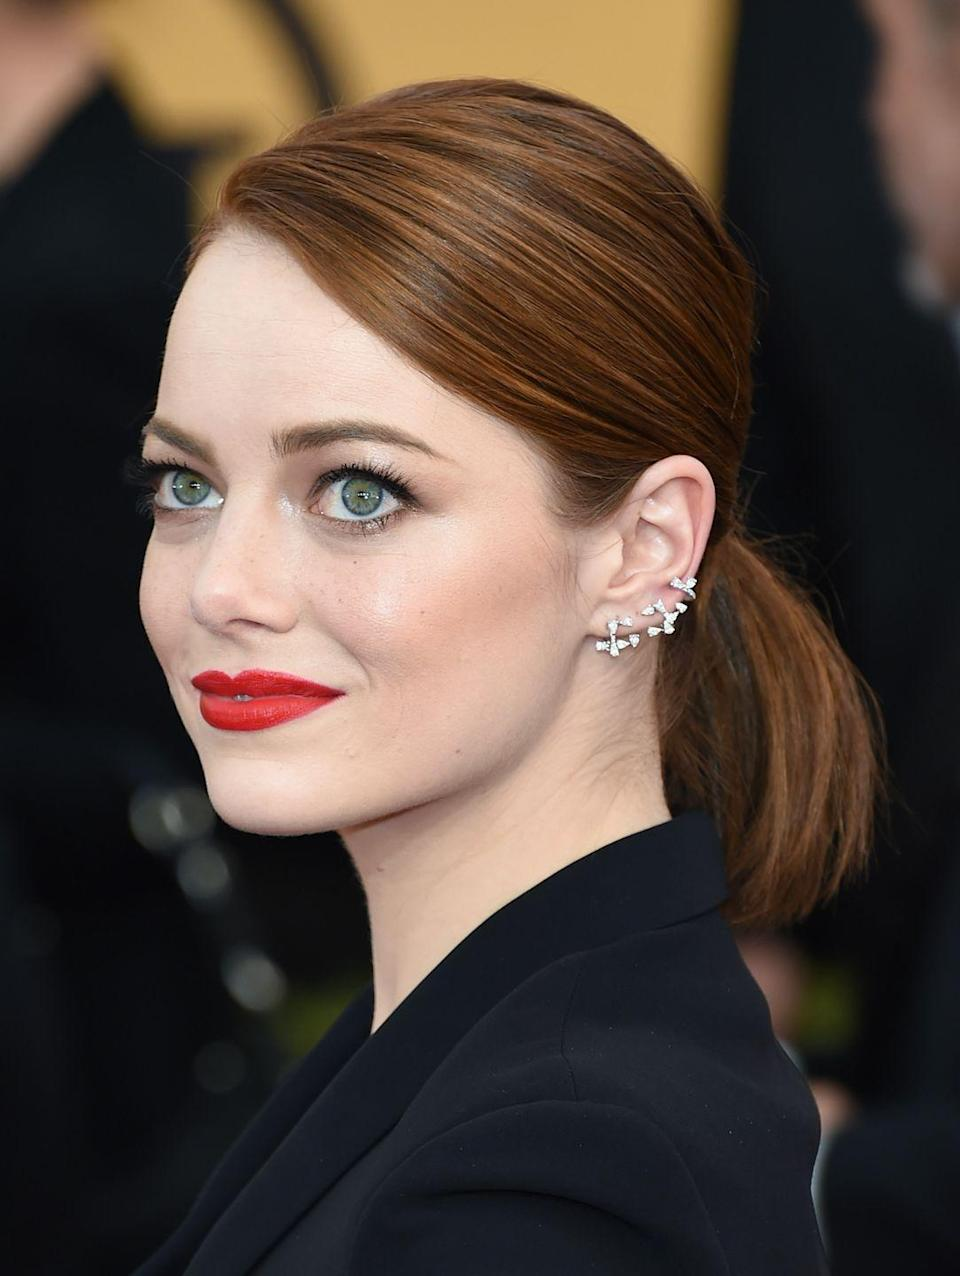 <p>The specs of diamond earrings climbing up her lobes makes Emma's ethereal beauty look even more like she just walked out of a fairytale. </p>